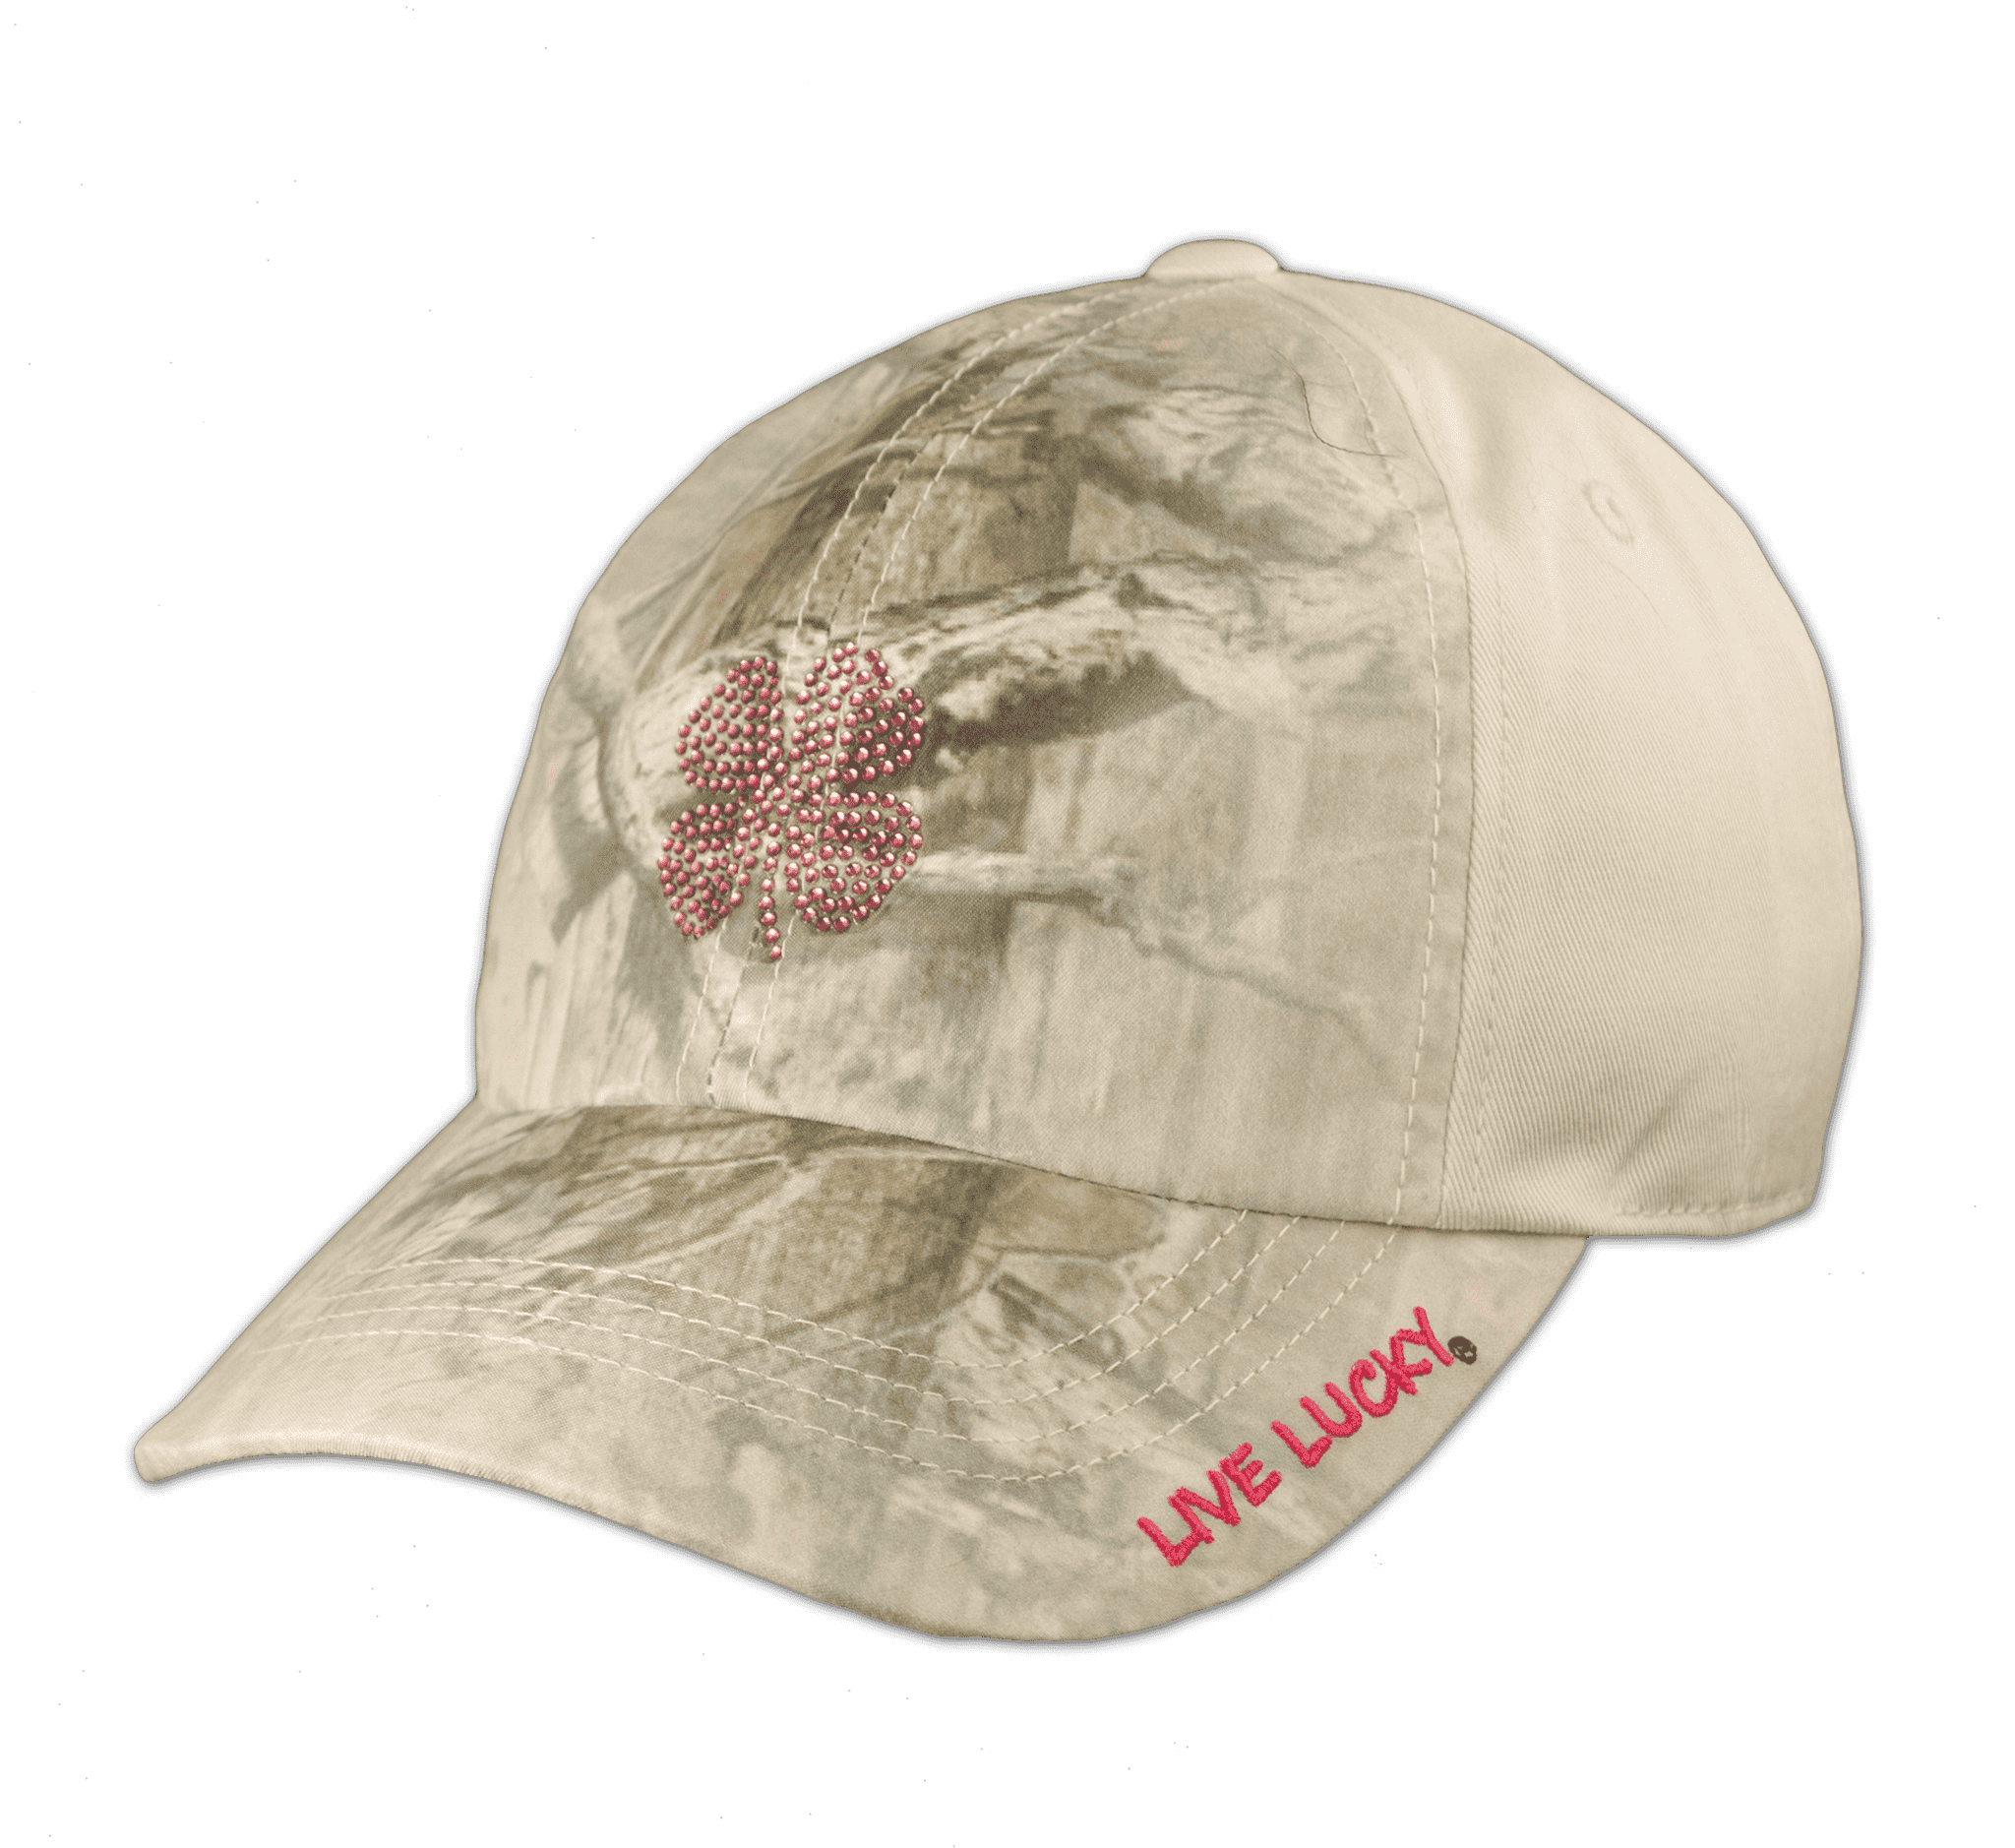 Black Clover Breast Cancer Camo Hat front view